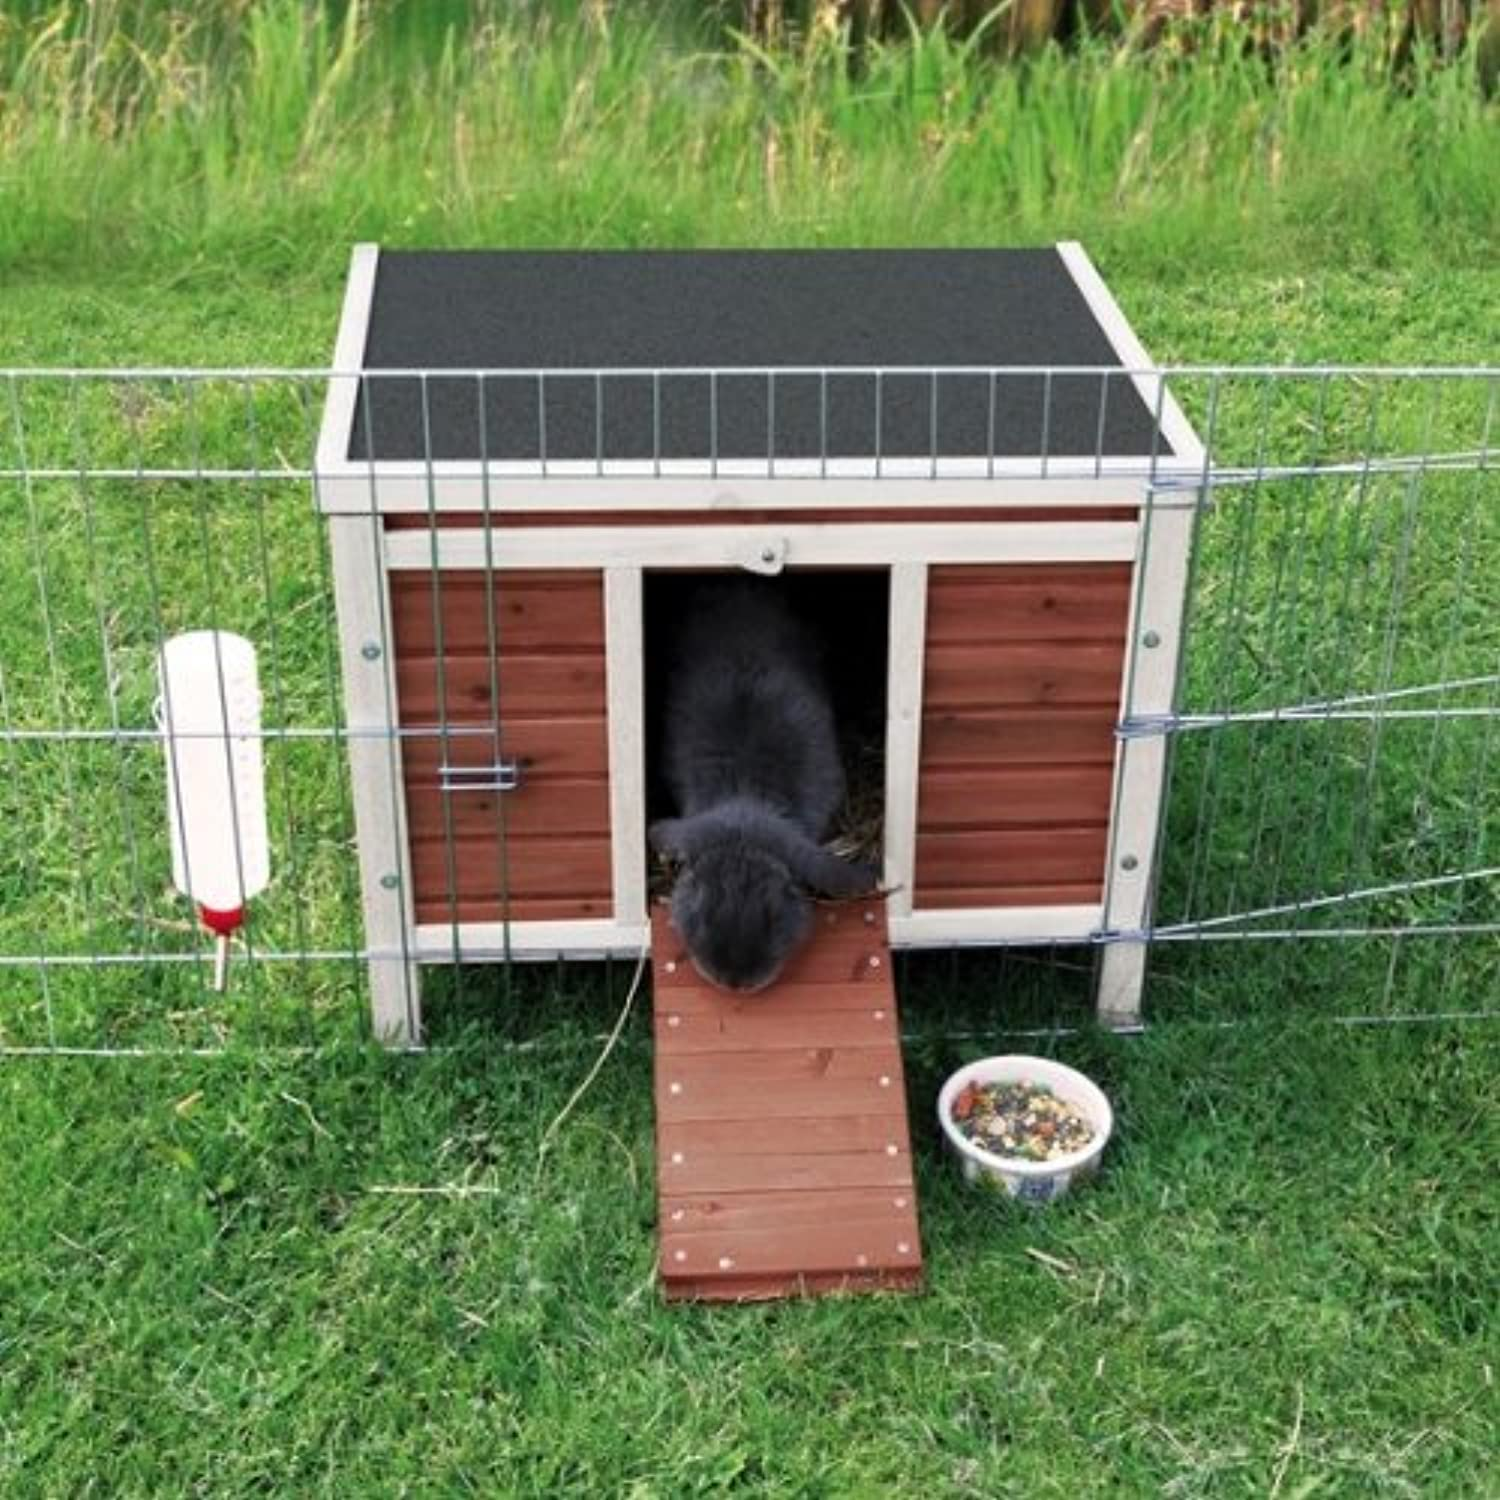 Natura Small Animal Home by Trixie  Available in 2 sizes so ideal for guineapigs or rabbits  This Small Outdoor House is Perfect to fit on runs or place inside to provide your pet with adequate shelter on hot sunny days, or if it starts to rain. (42x43x51